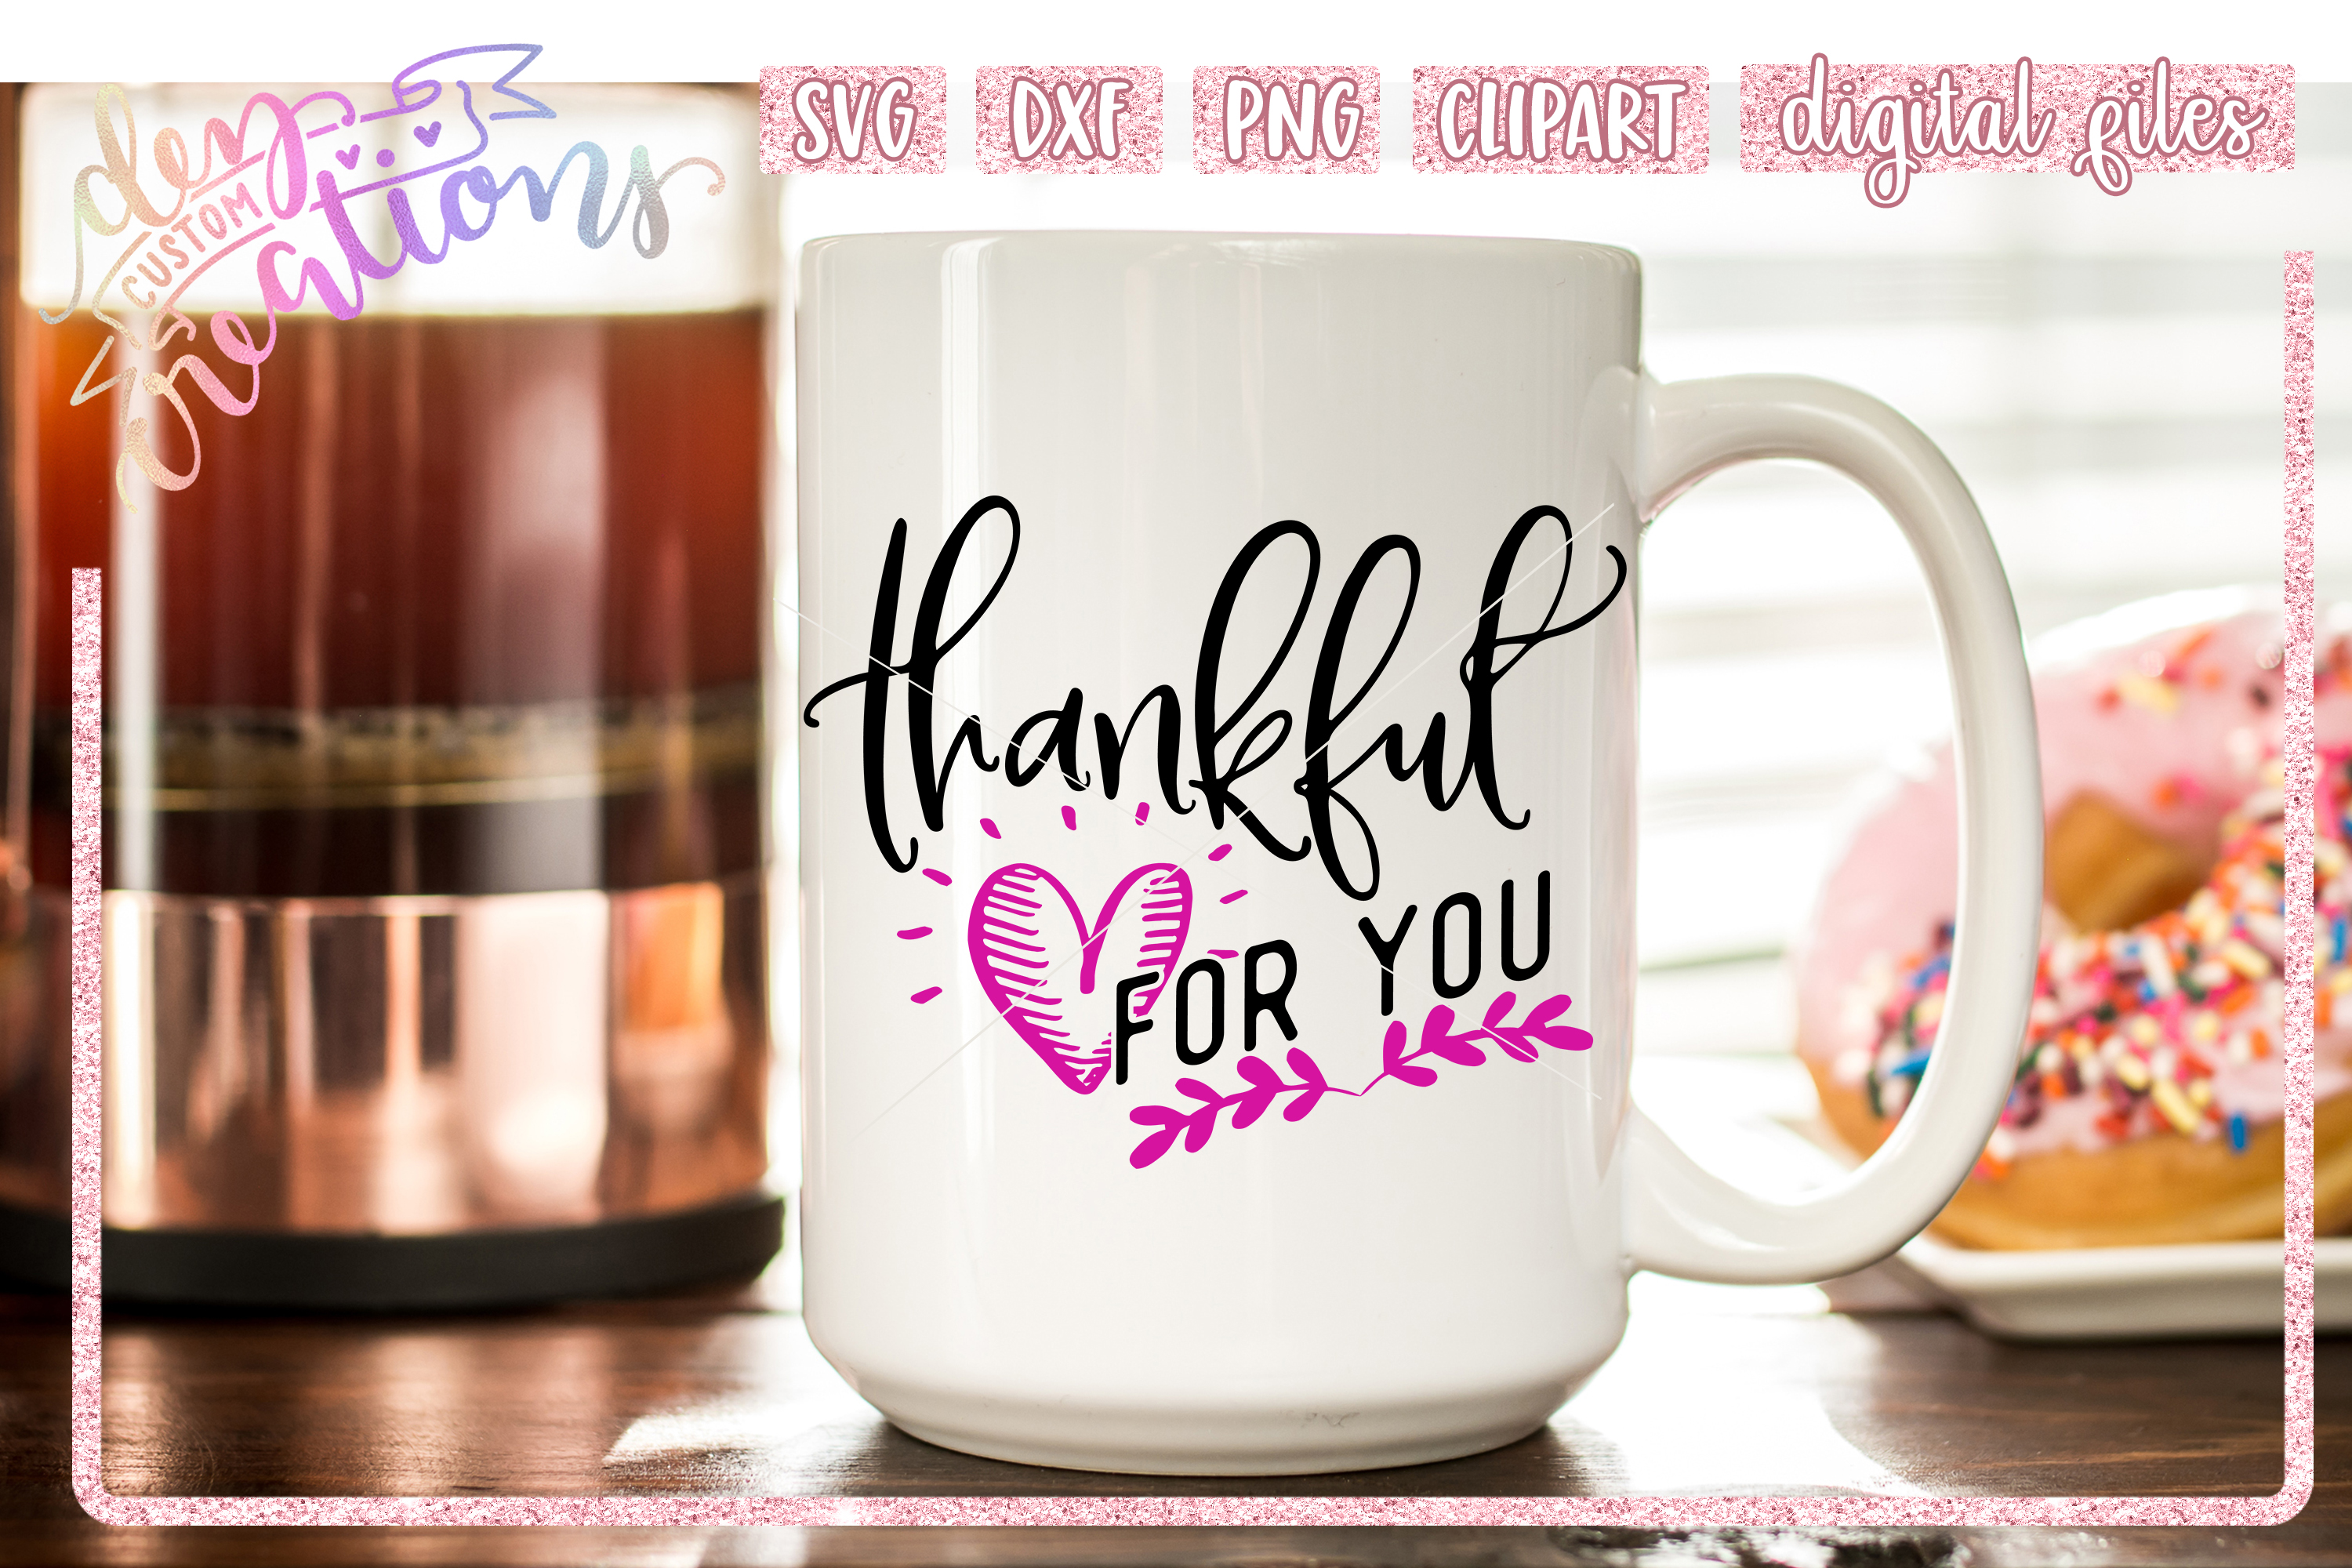 Thankful For You - SVG DXF PNG File example image 2